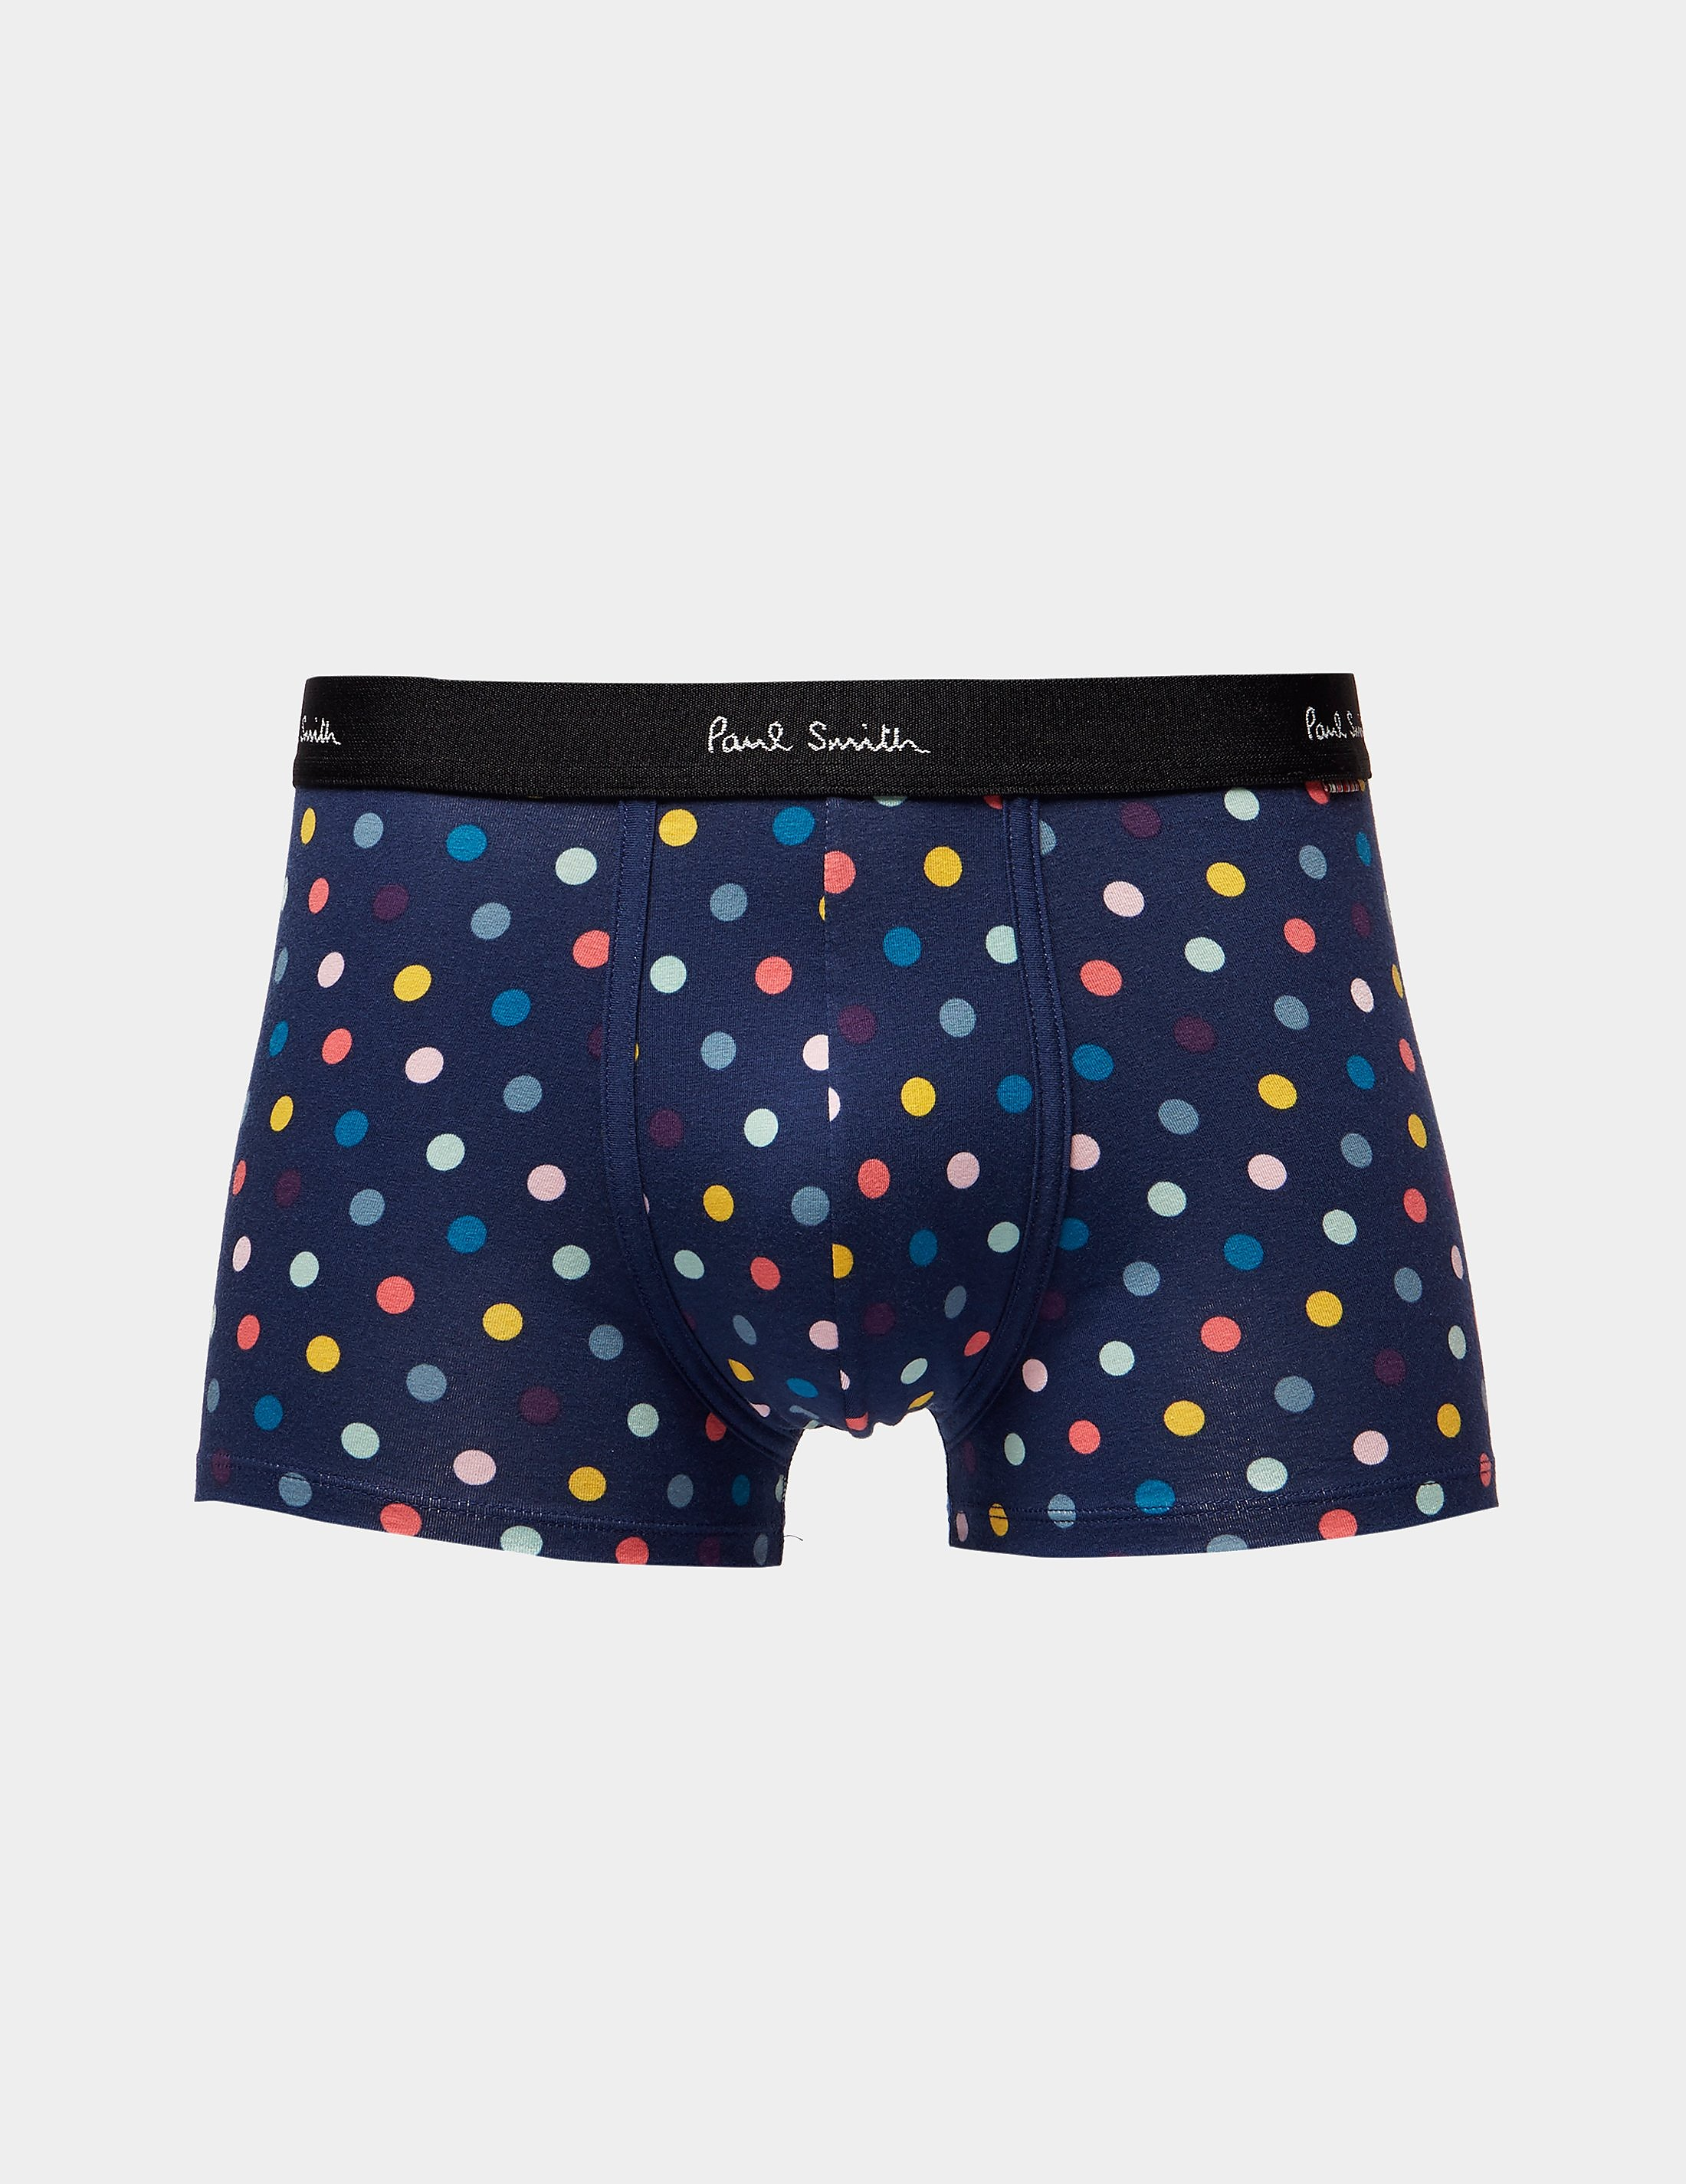 Paul Smith Polka Dot Trunks